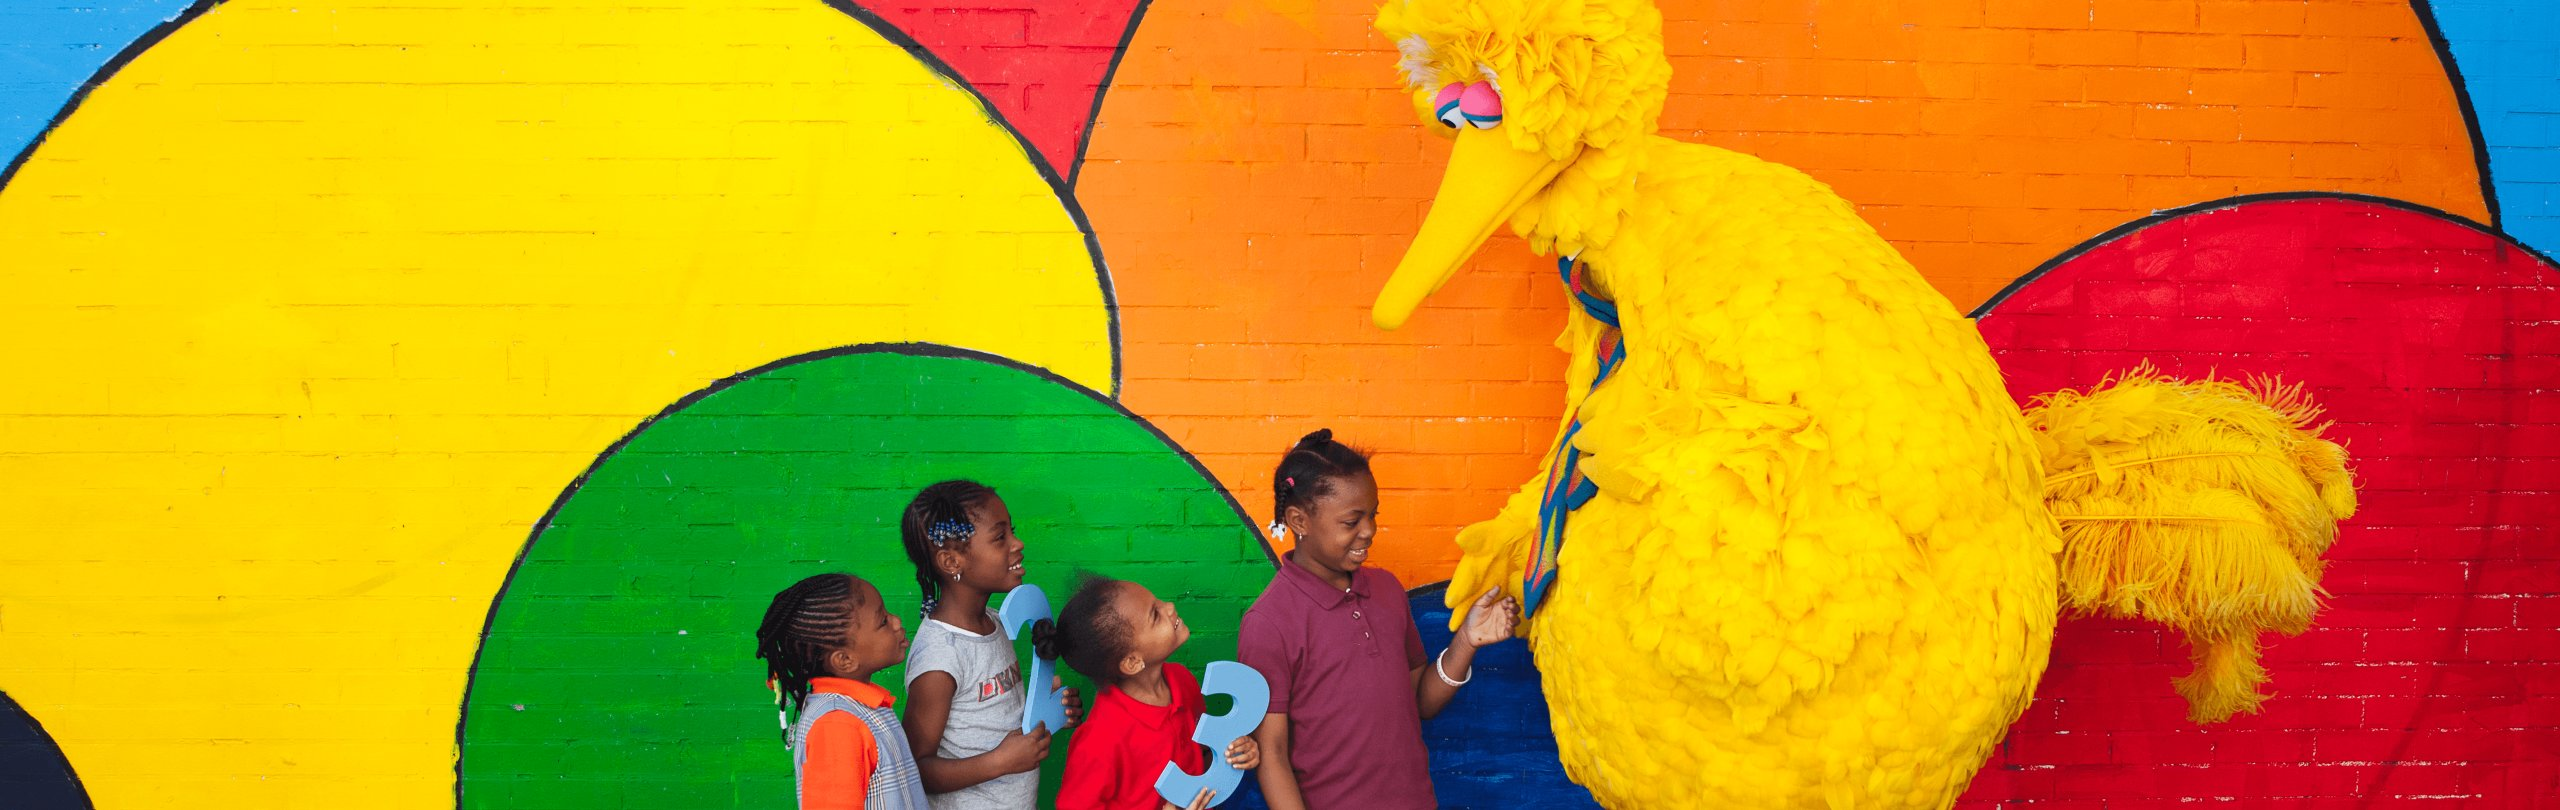 Big Bird with a group of children against a bright mural